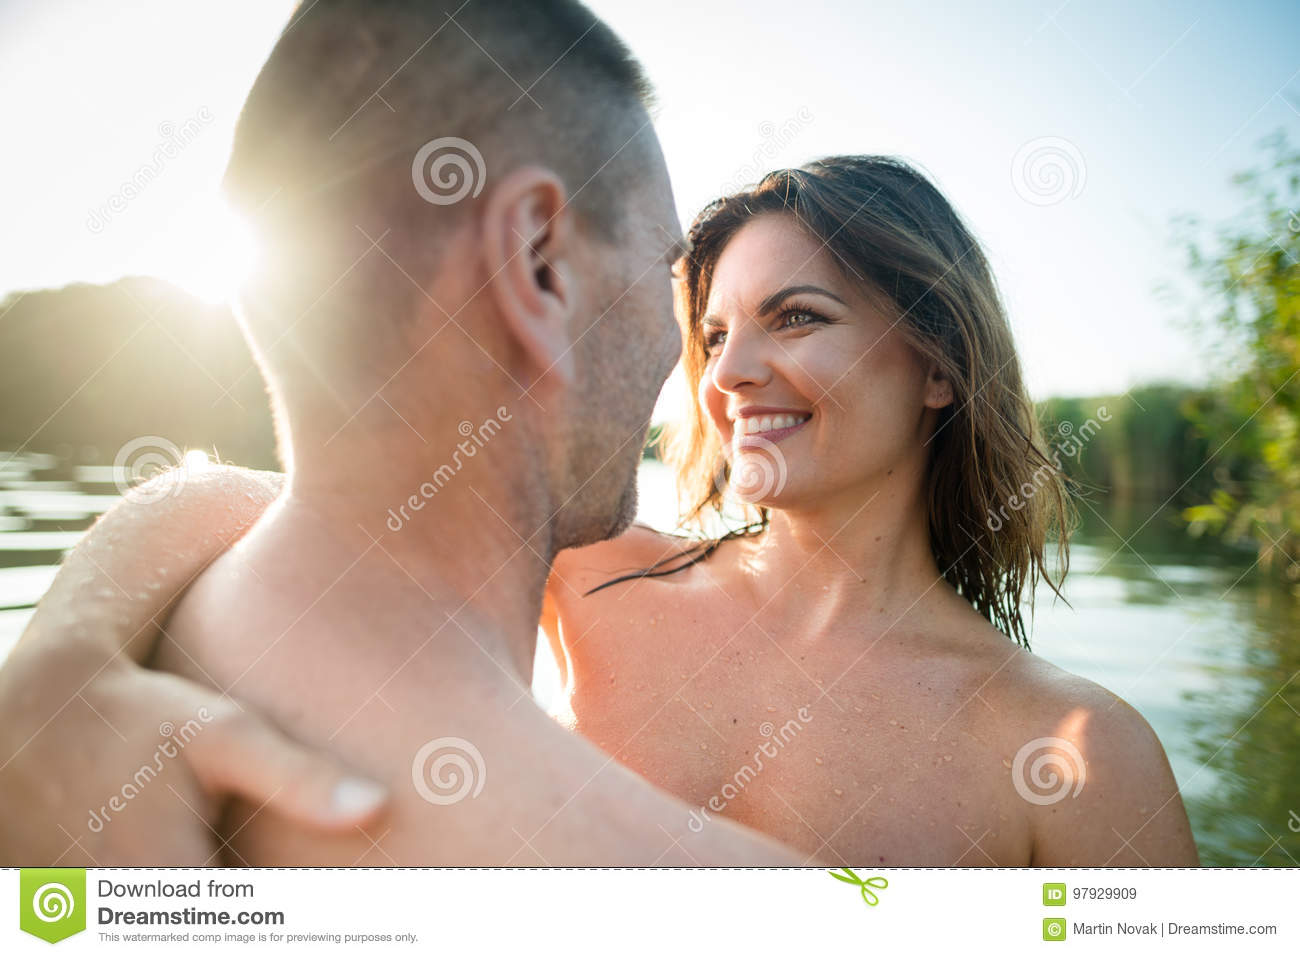 nude pictures Socially couples